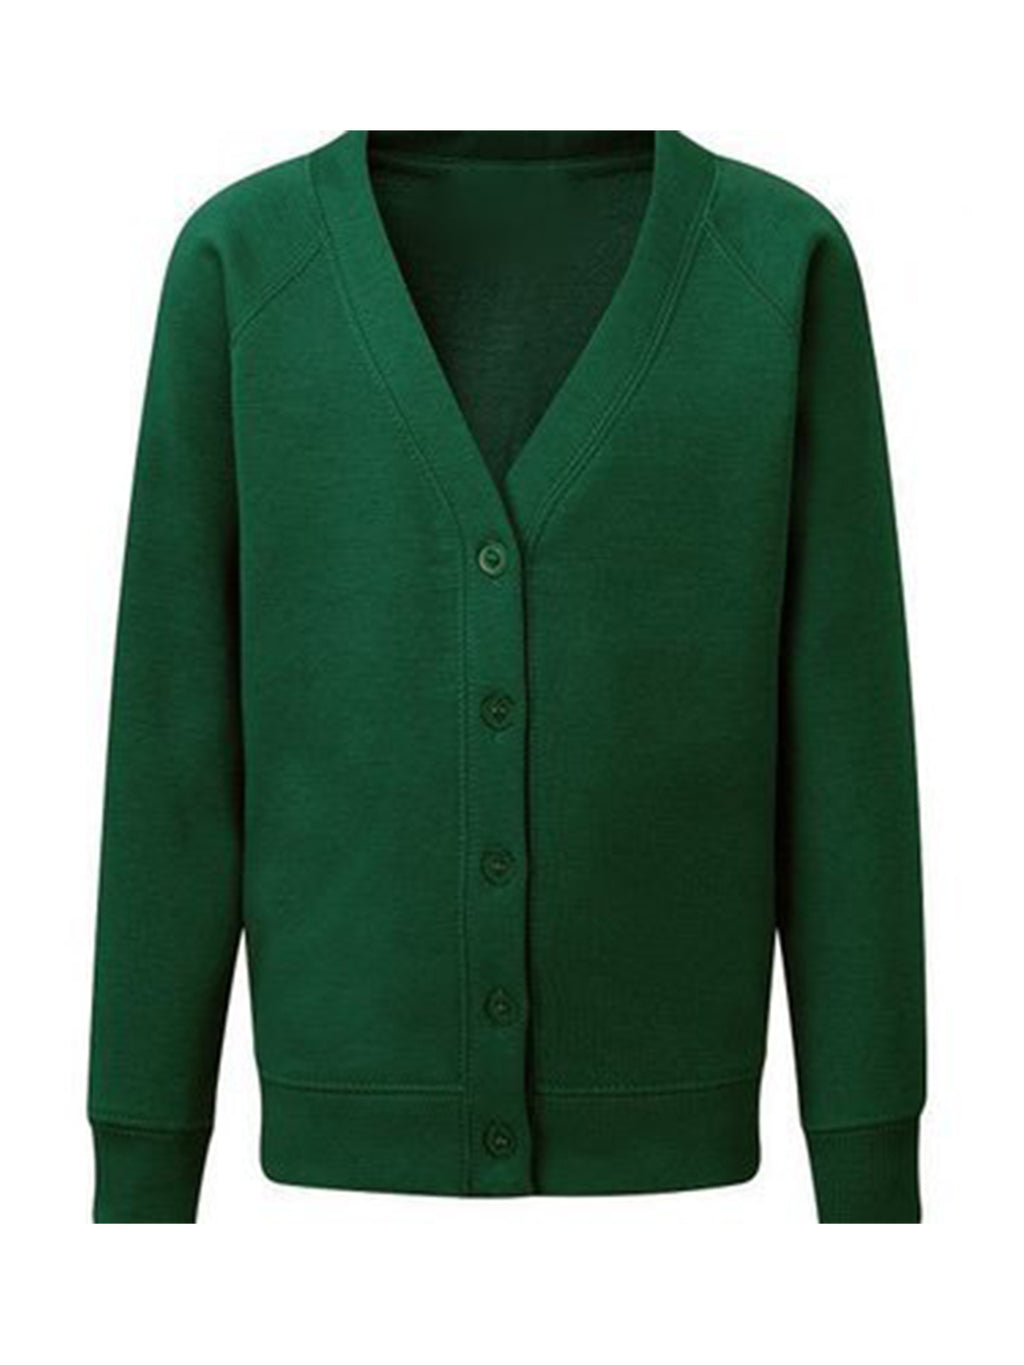 regent house uniform cardigan